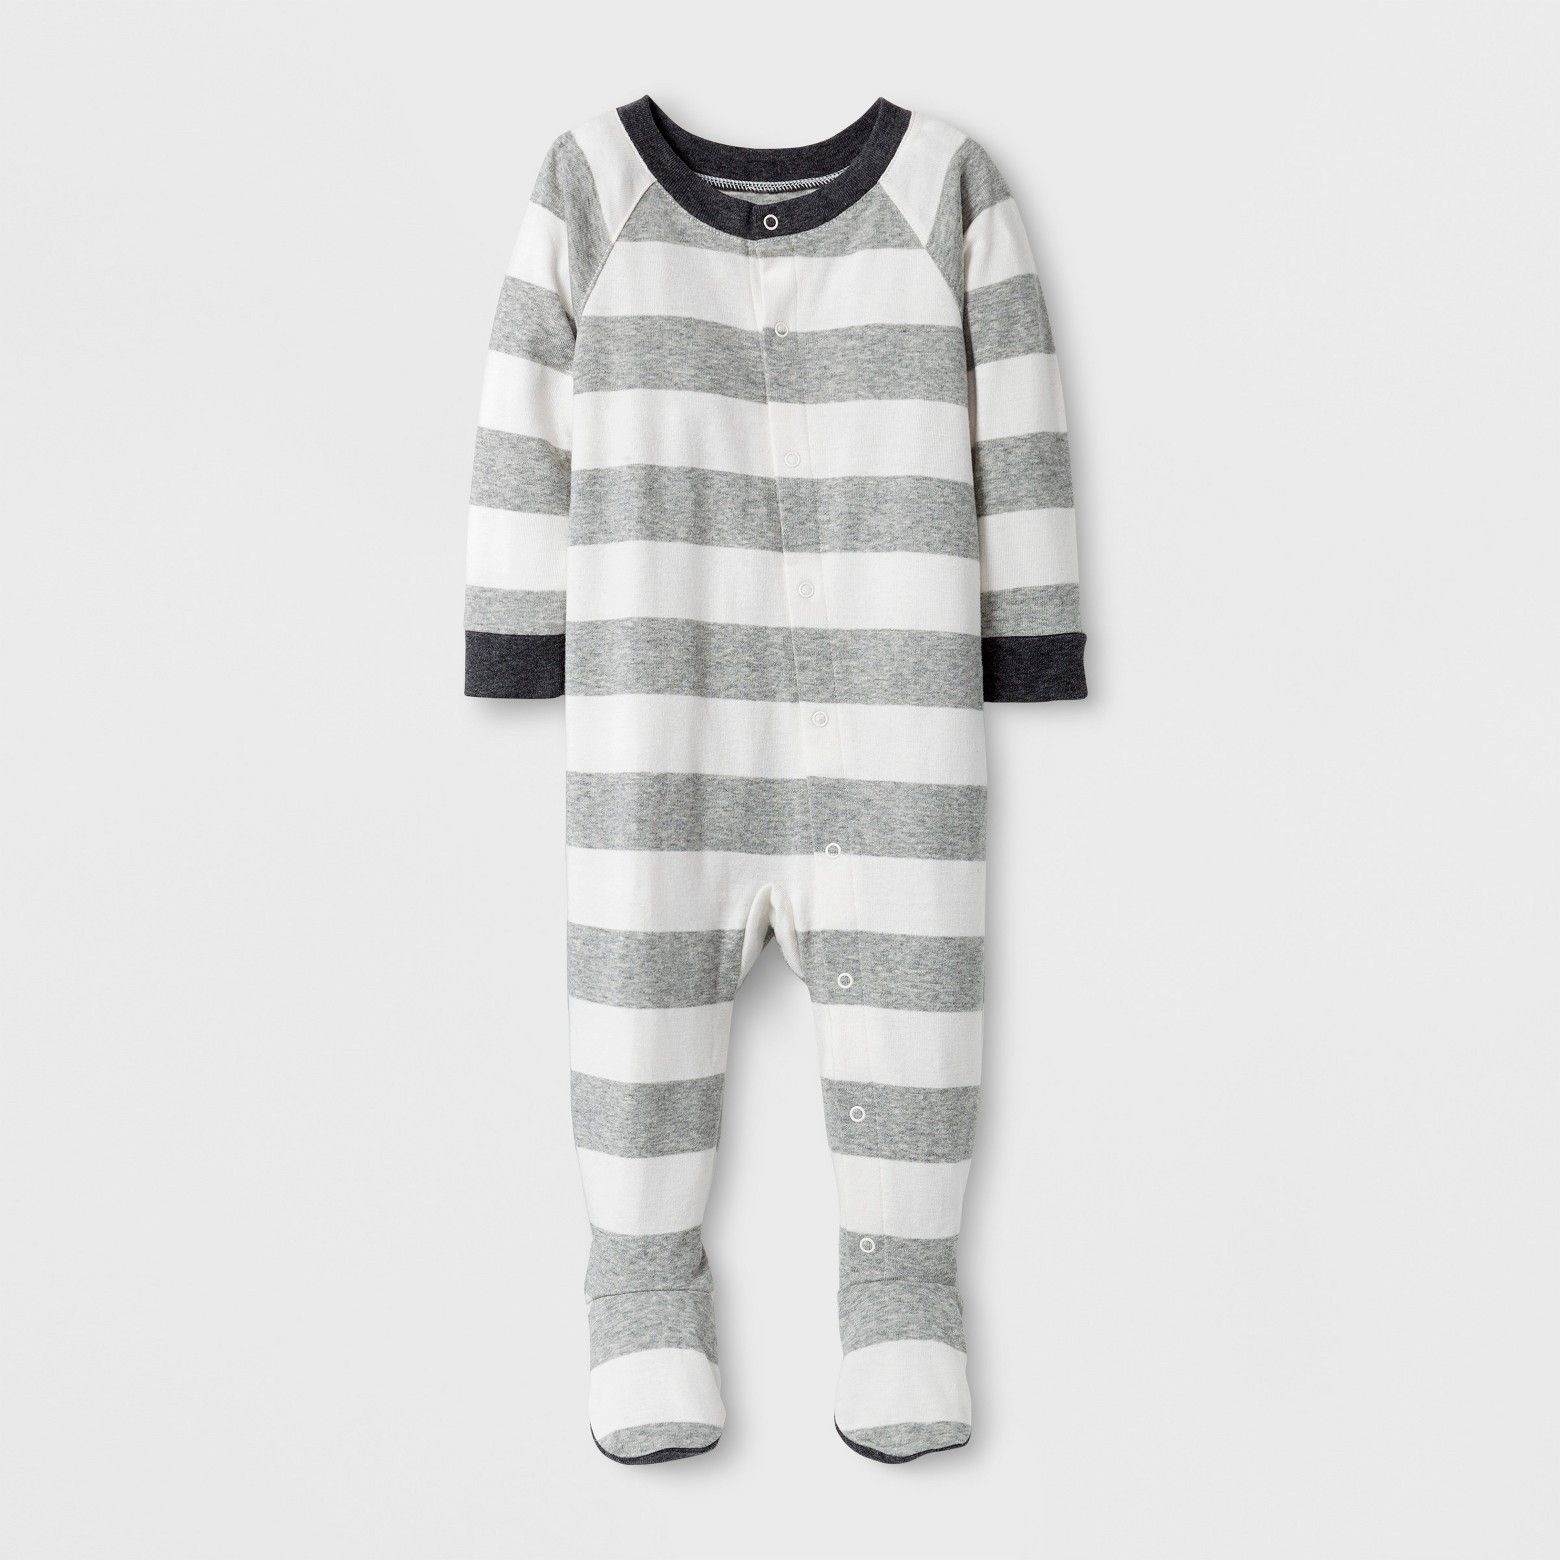 Shop Tar for uni baby clothing Find a selection of gender